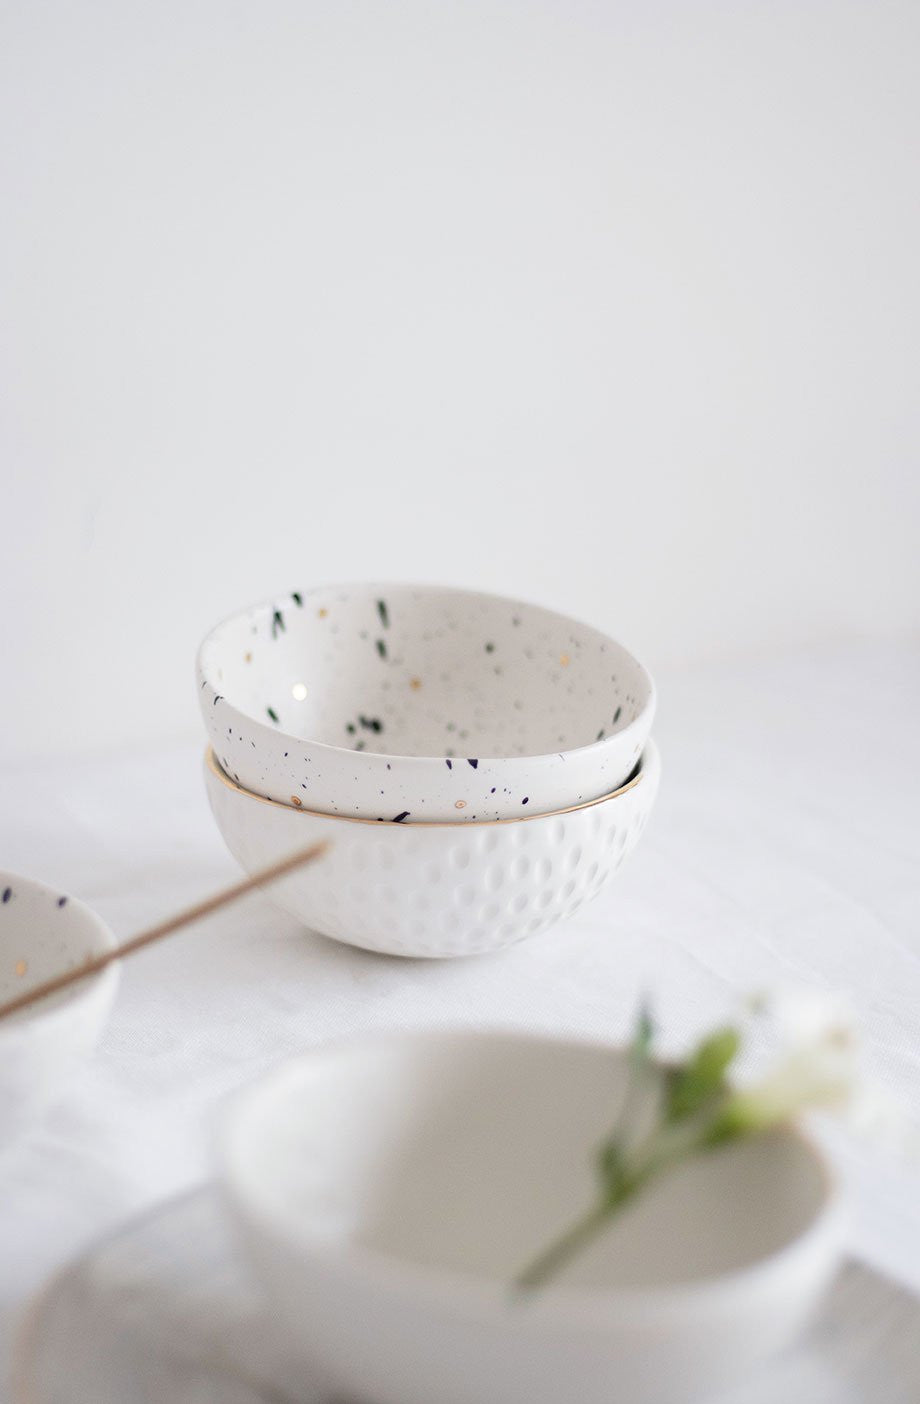 Homes in Colour - Black Dripping & Golden Polka Dots Bowl